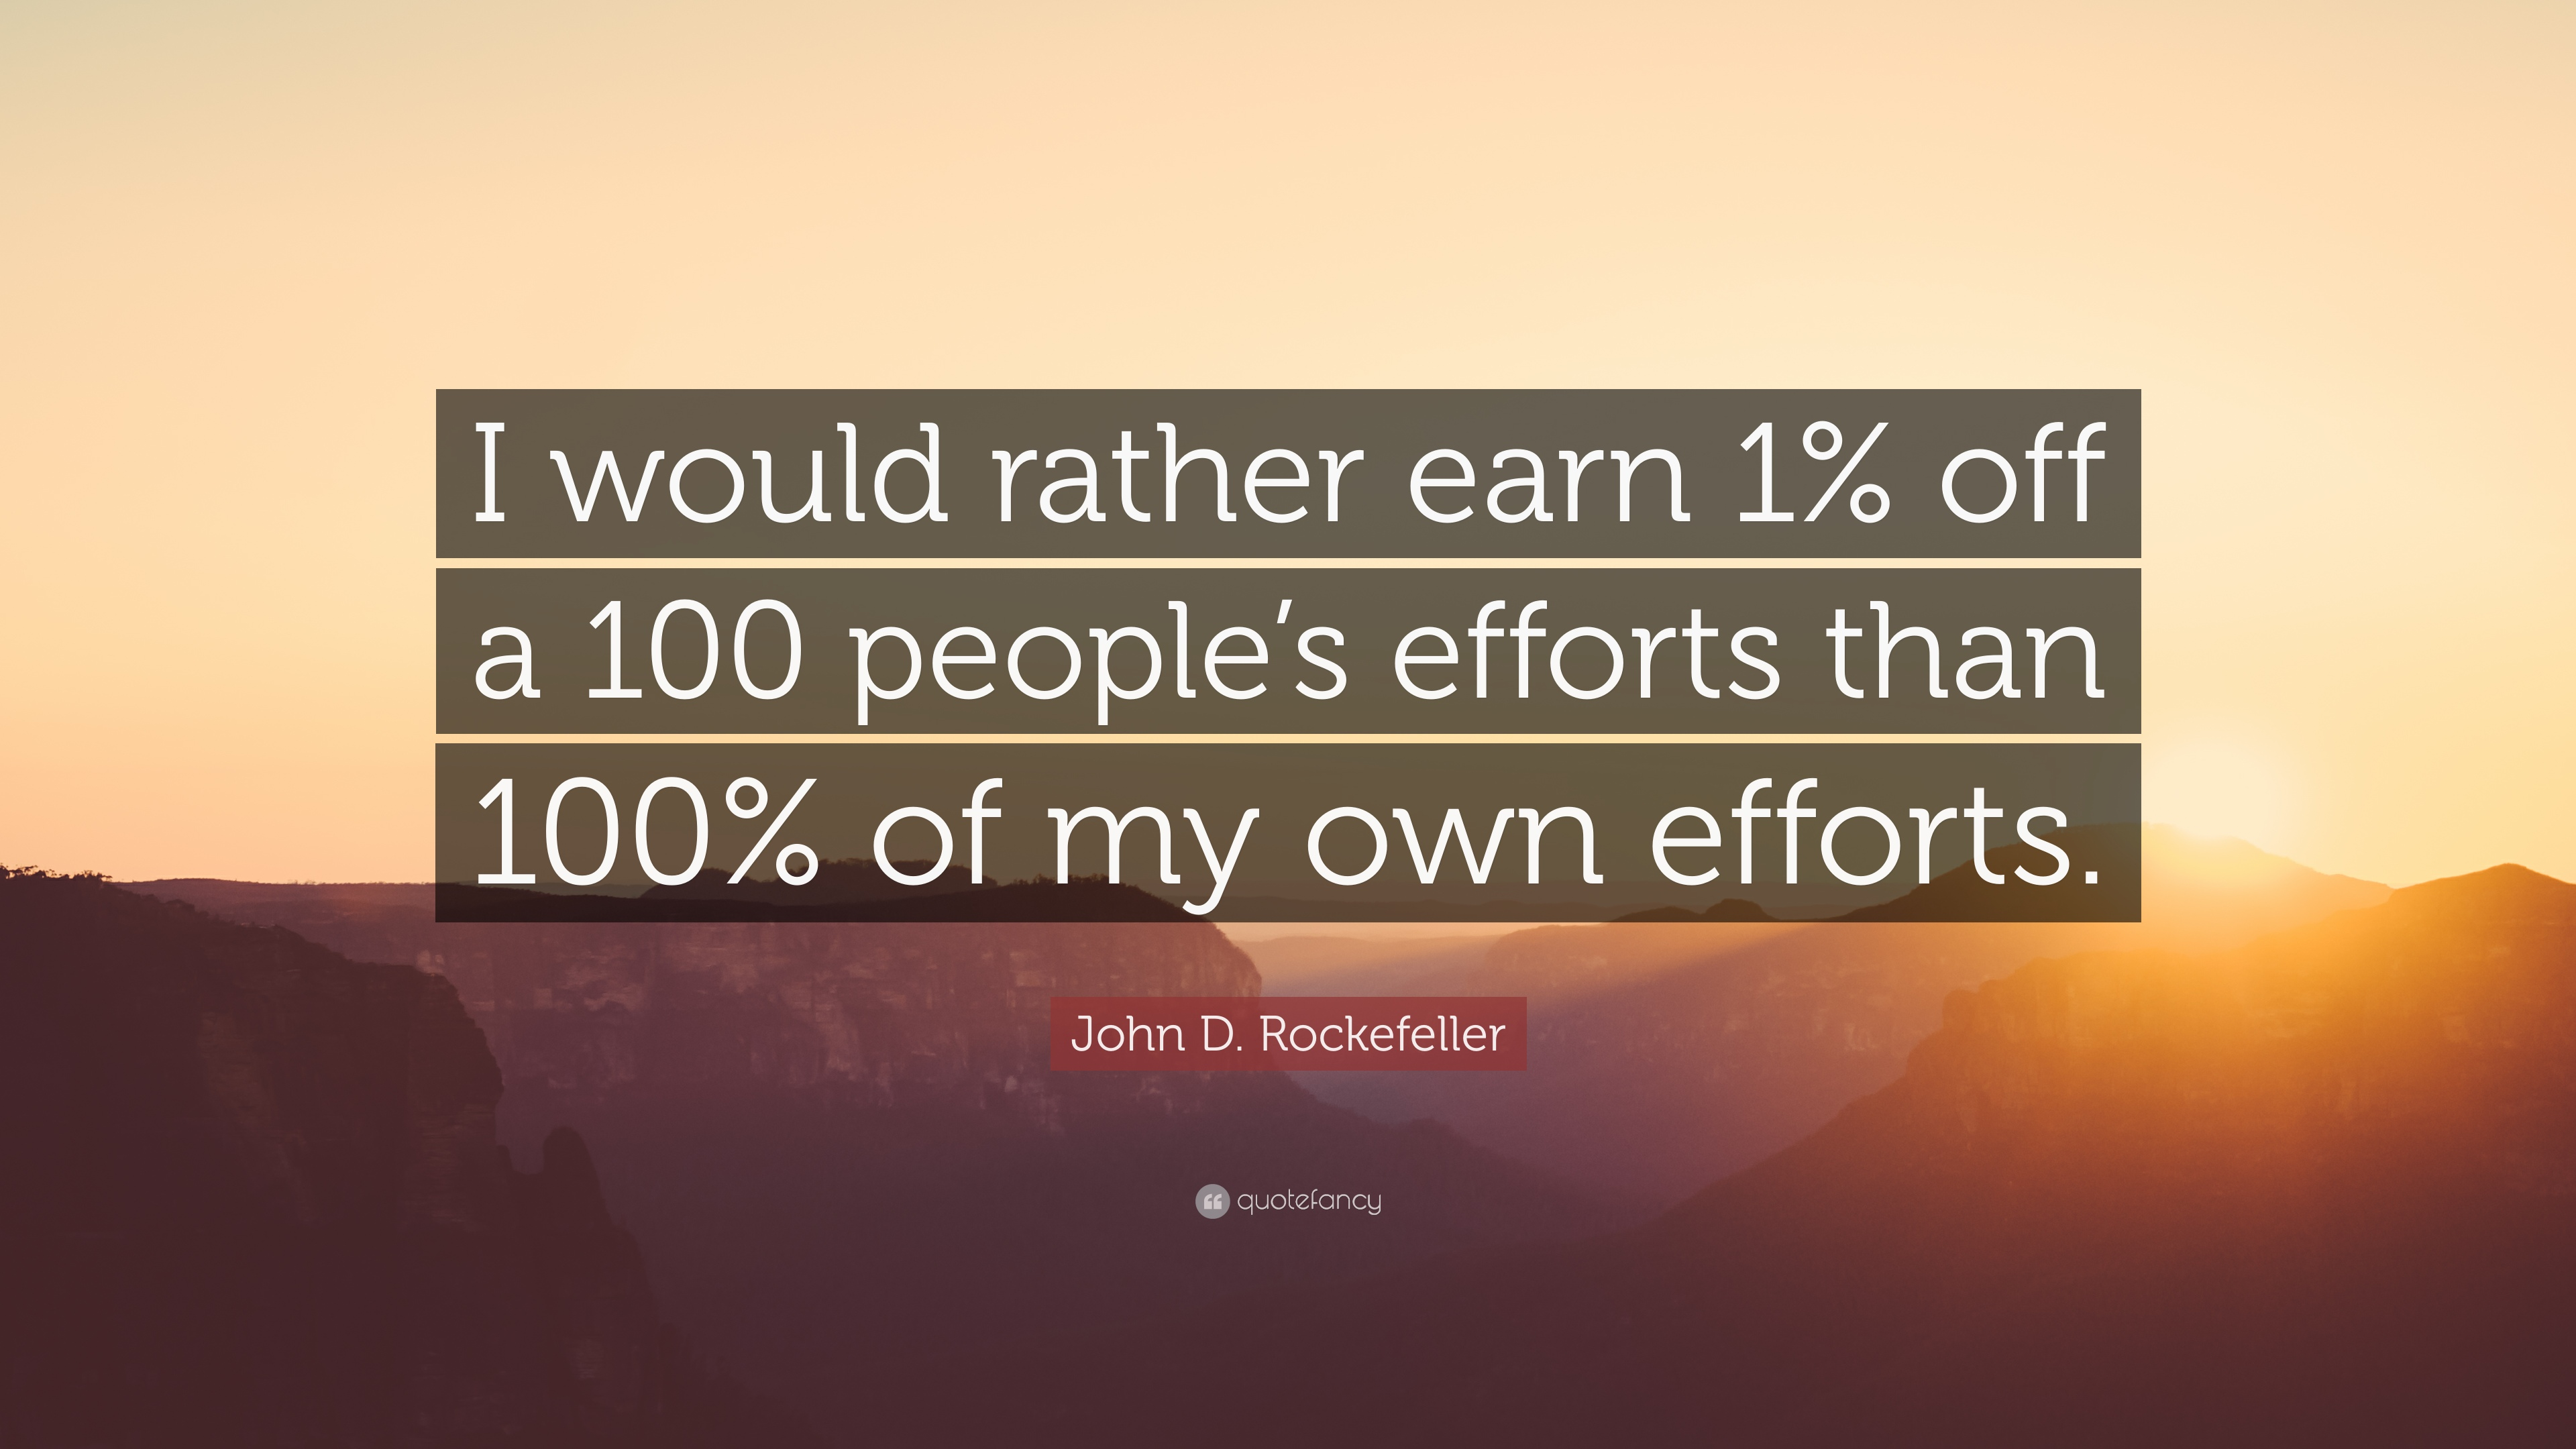 John D Rockefeller Quote I Would Rather Earn 1 Off A 100